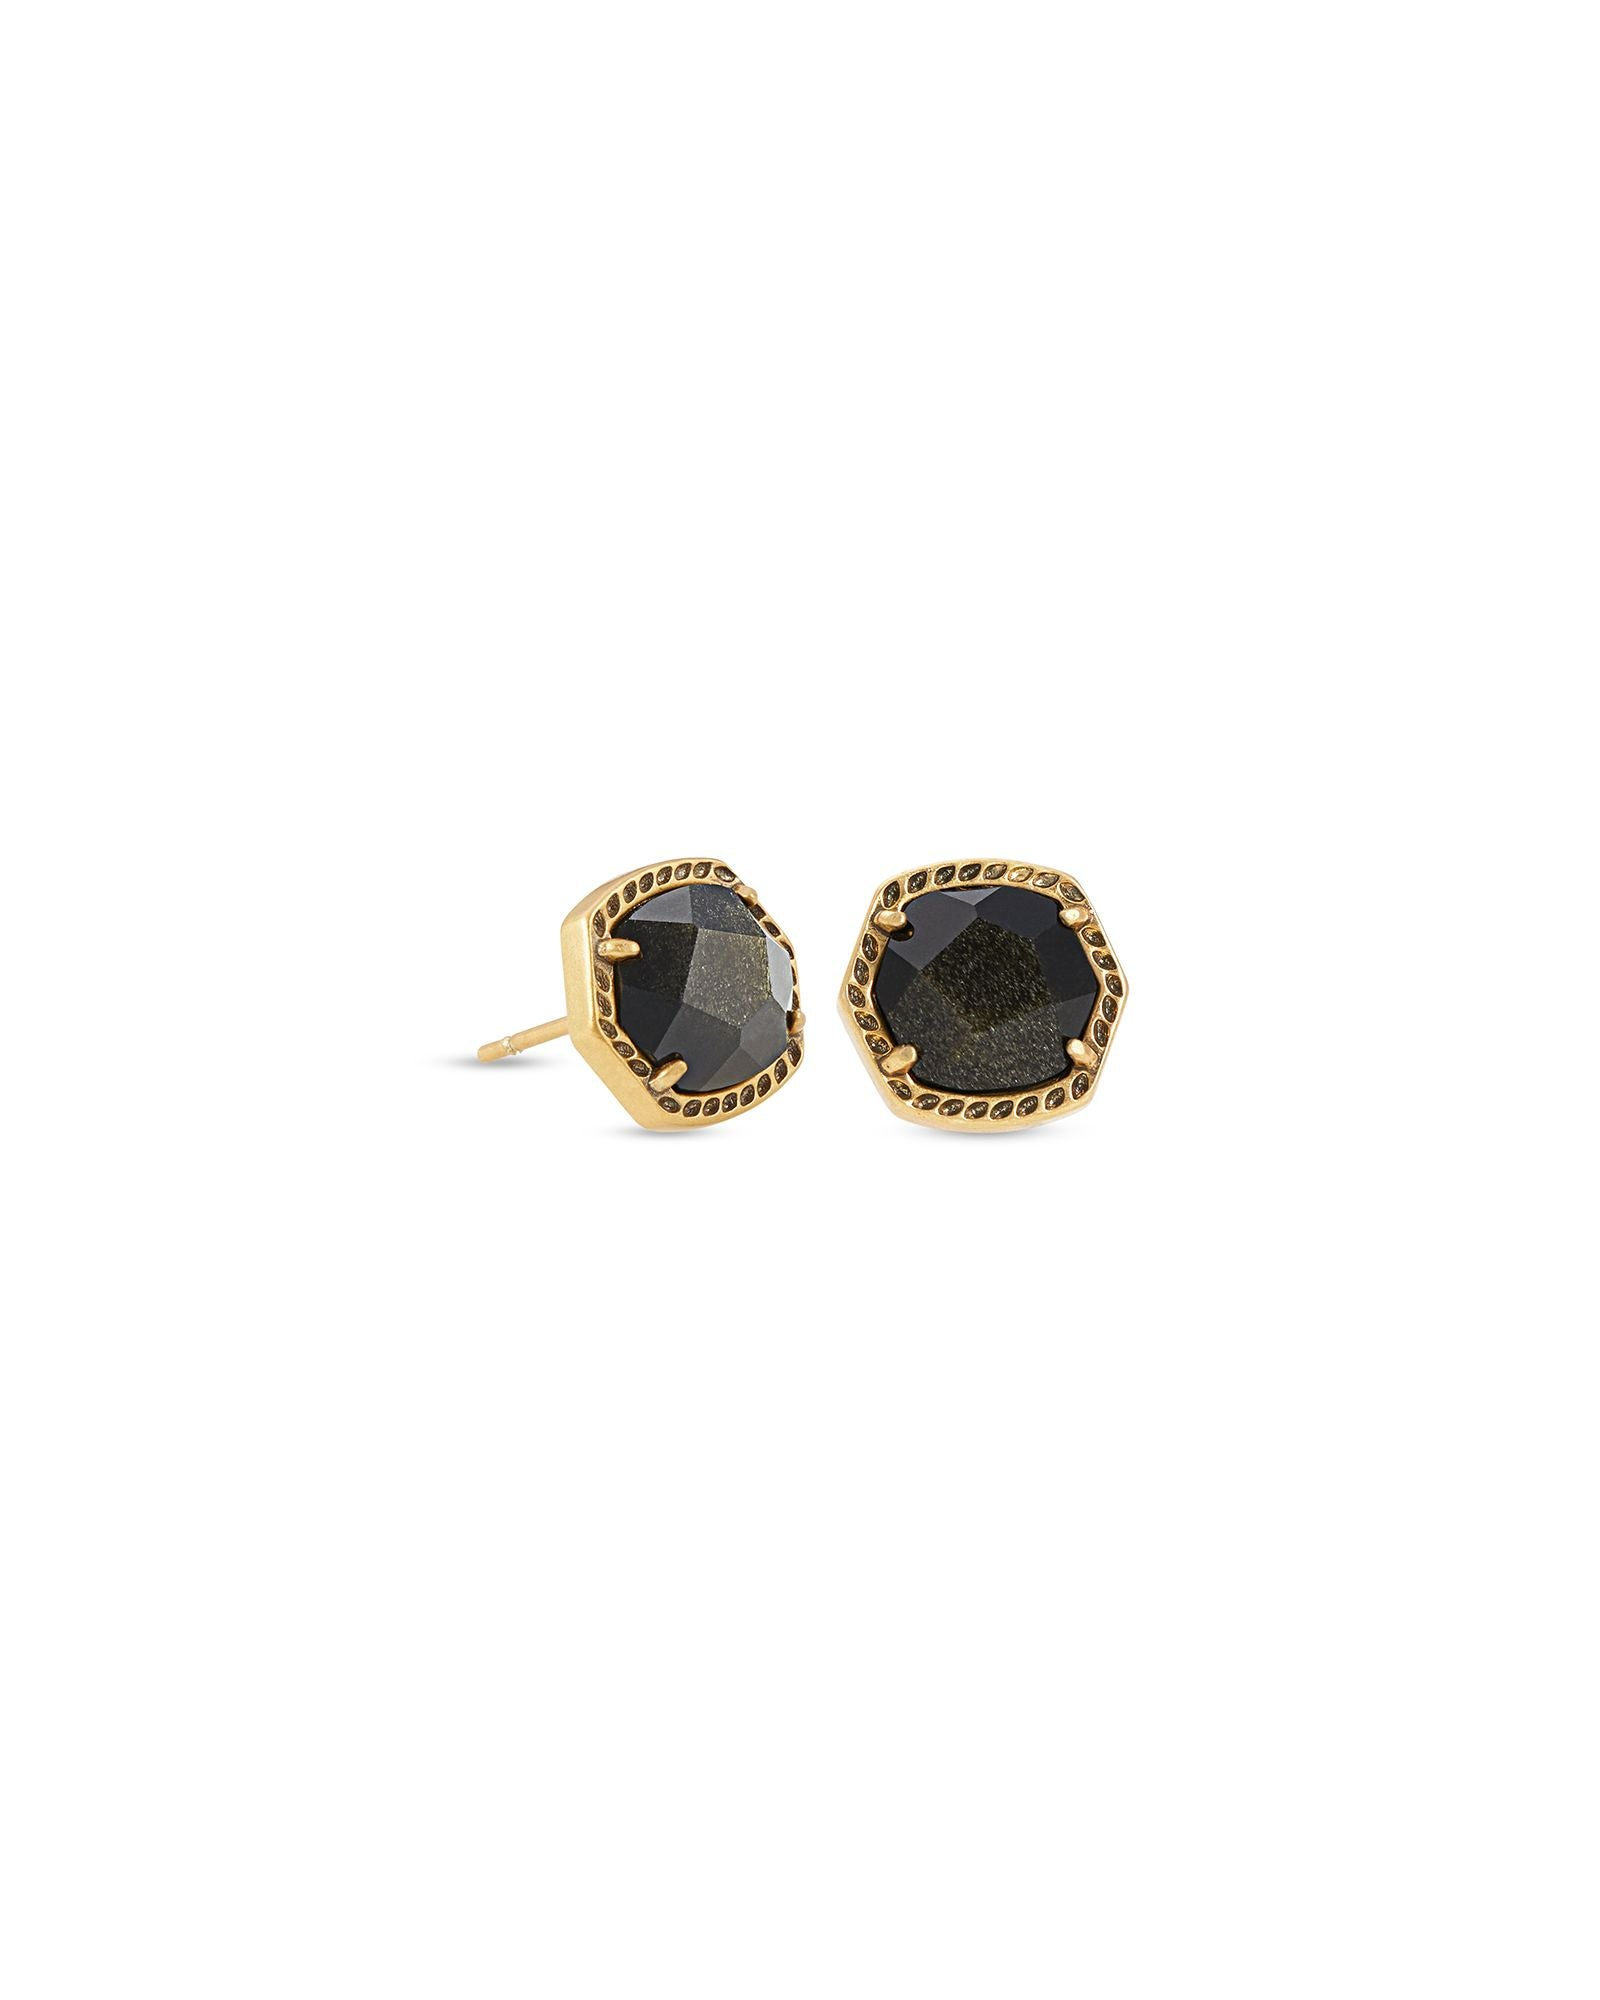 Davie Stud Earrings in Vintage Gold Golden Obsidian